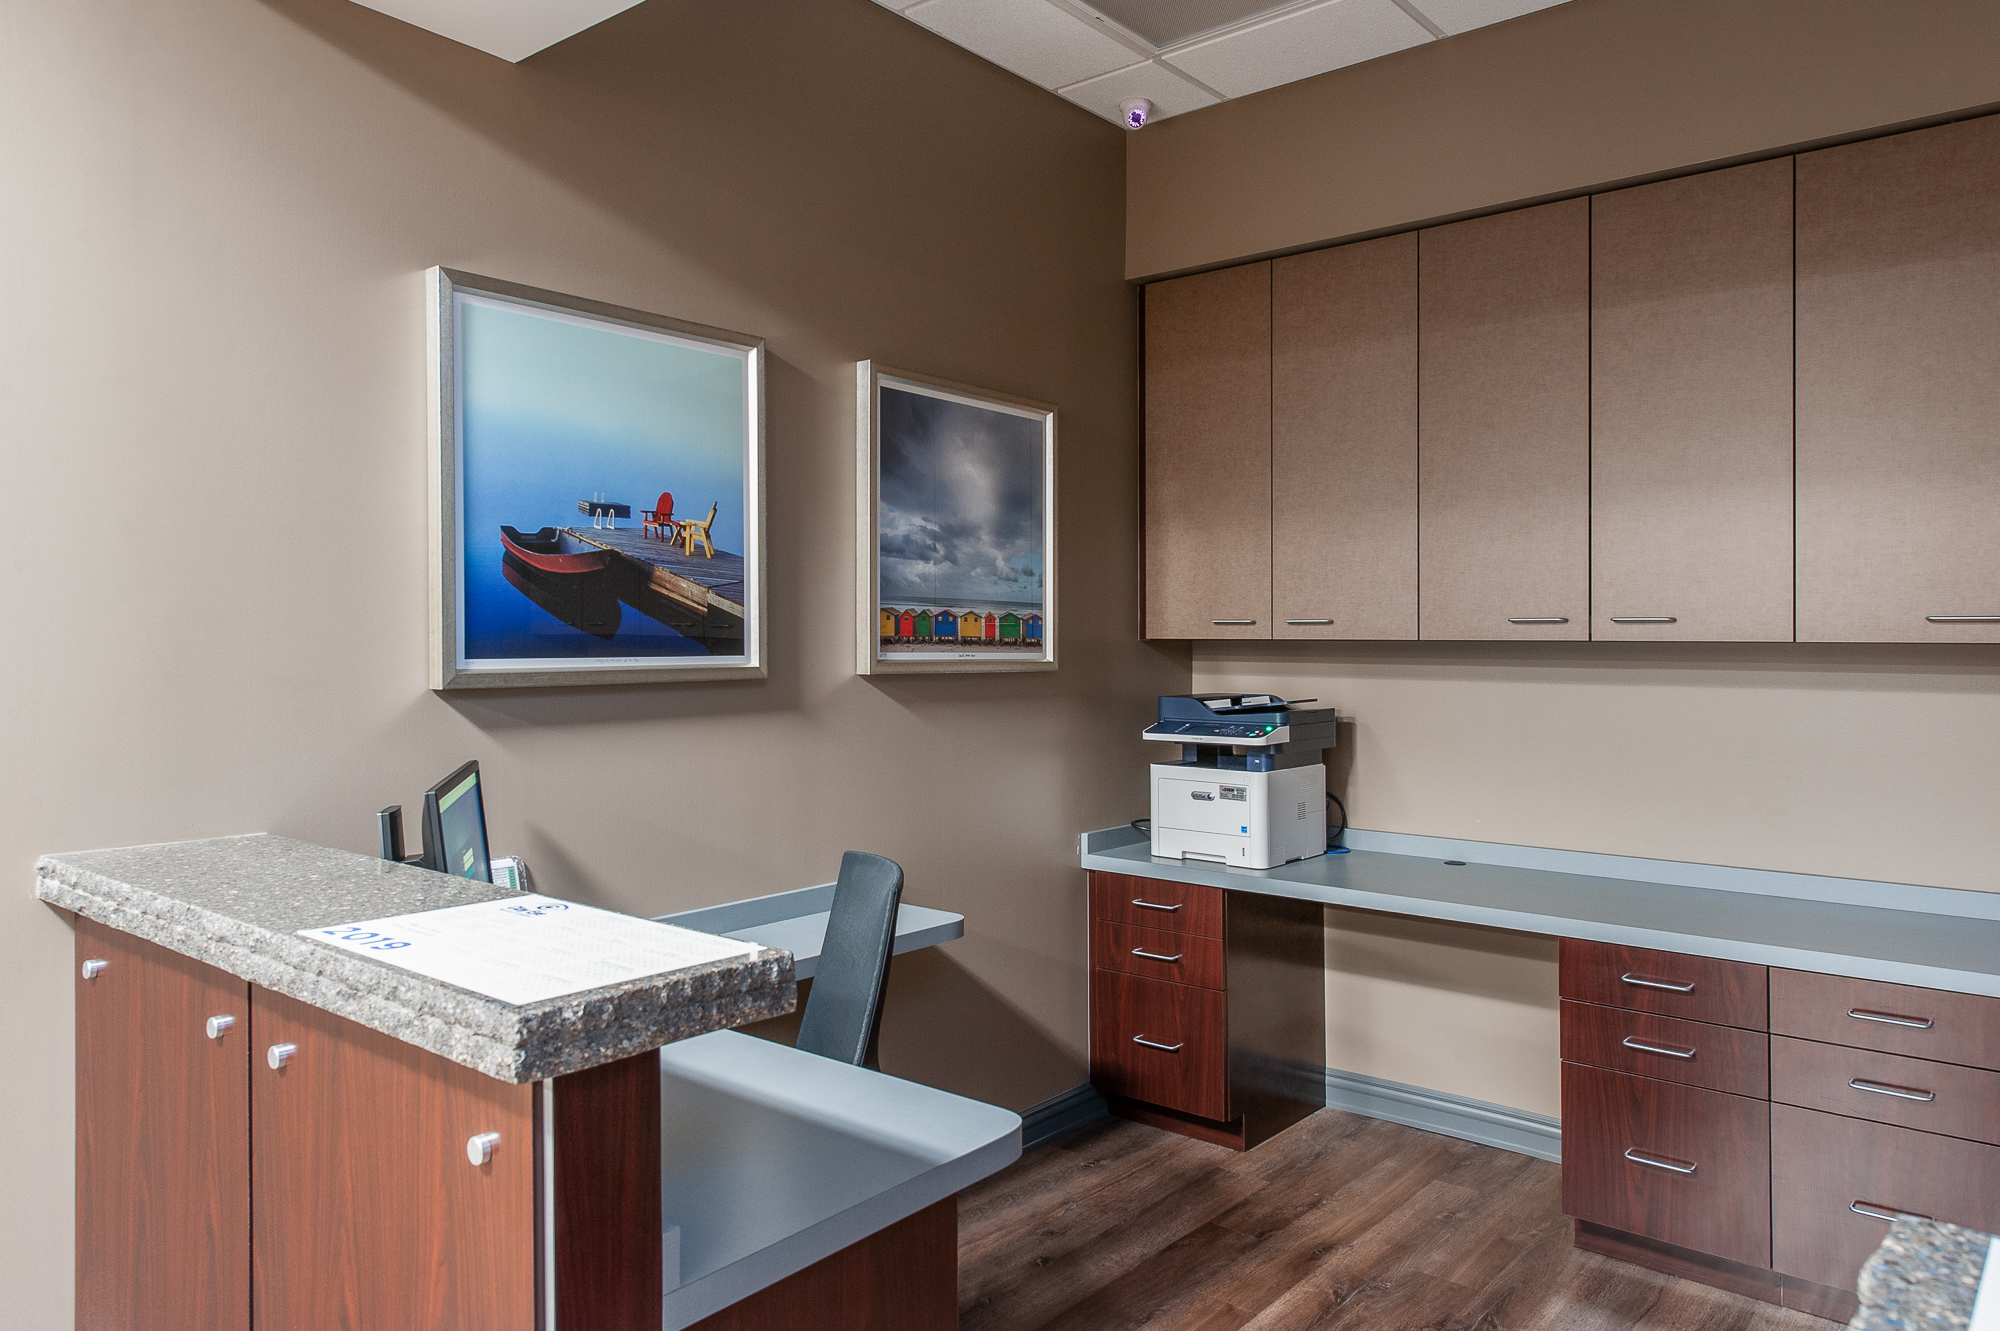 Micamy Design Studio_Interior Design_Clay Eye_Mandarin_Opthamology_Commercial_Office_Medical_Eye Care_Renovation_Crossville_Interiors_Artwork_Coastal_Crossville_Eykon14.jpg